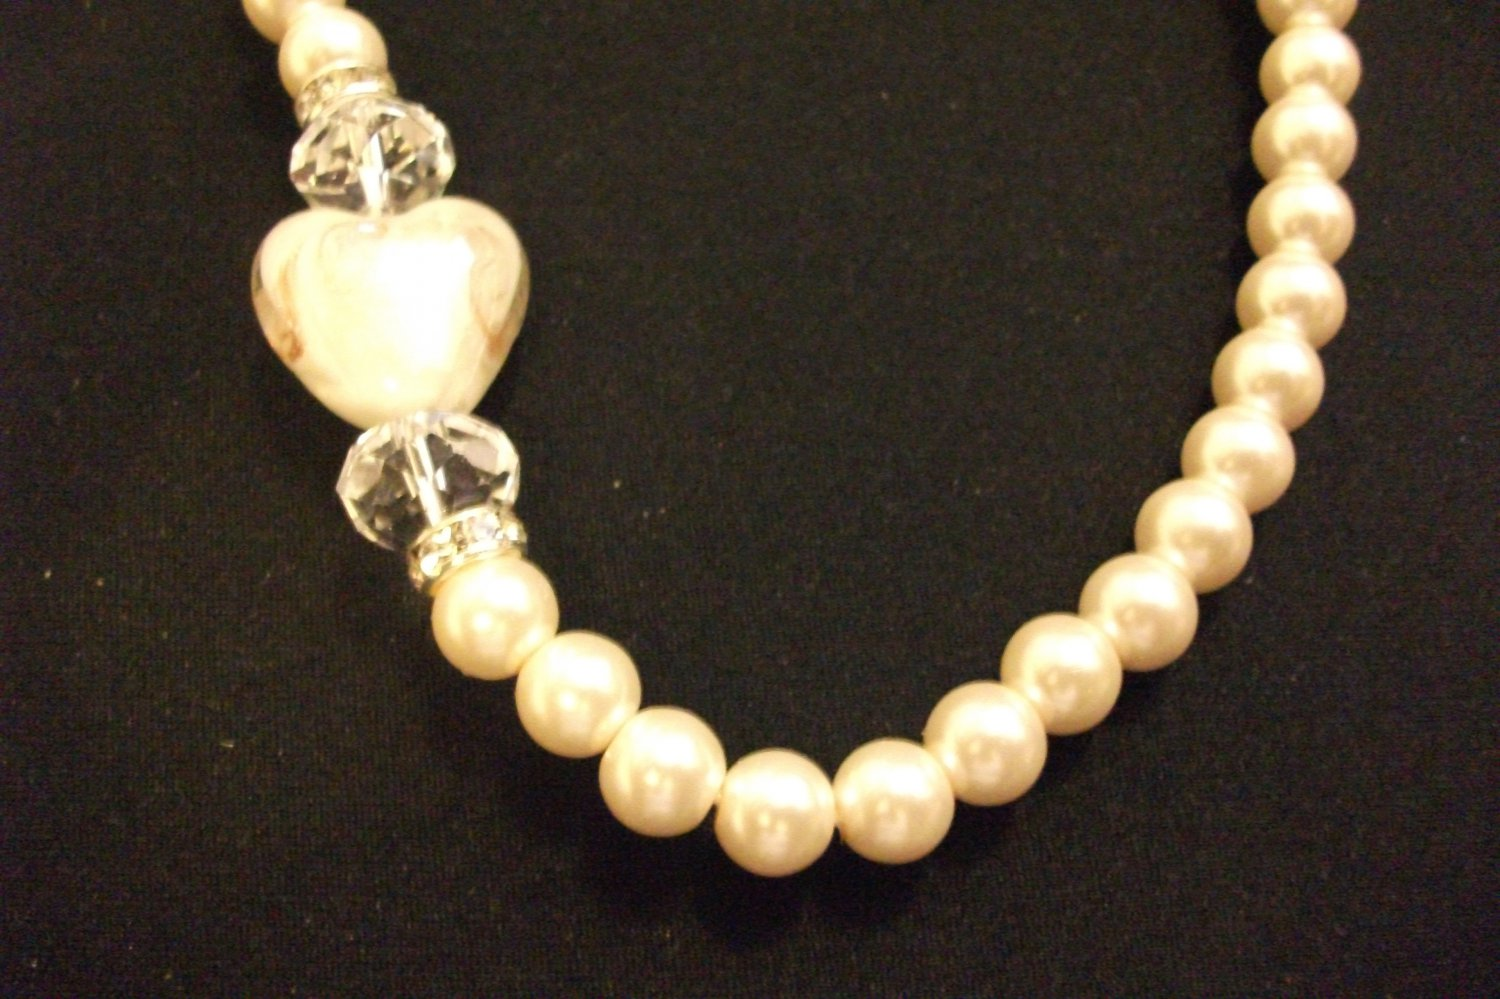 White 3 Layer Necklace Set with Pearl Inspired Beads